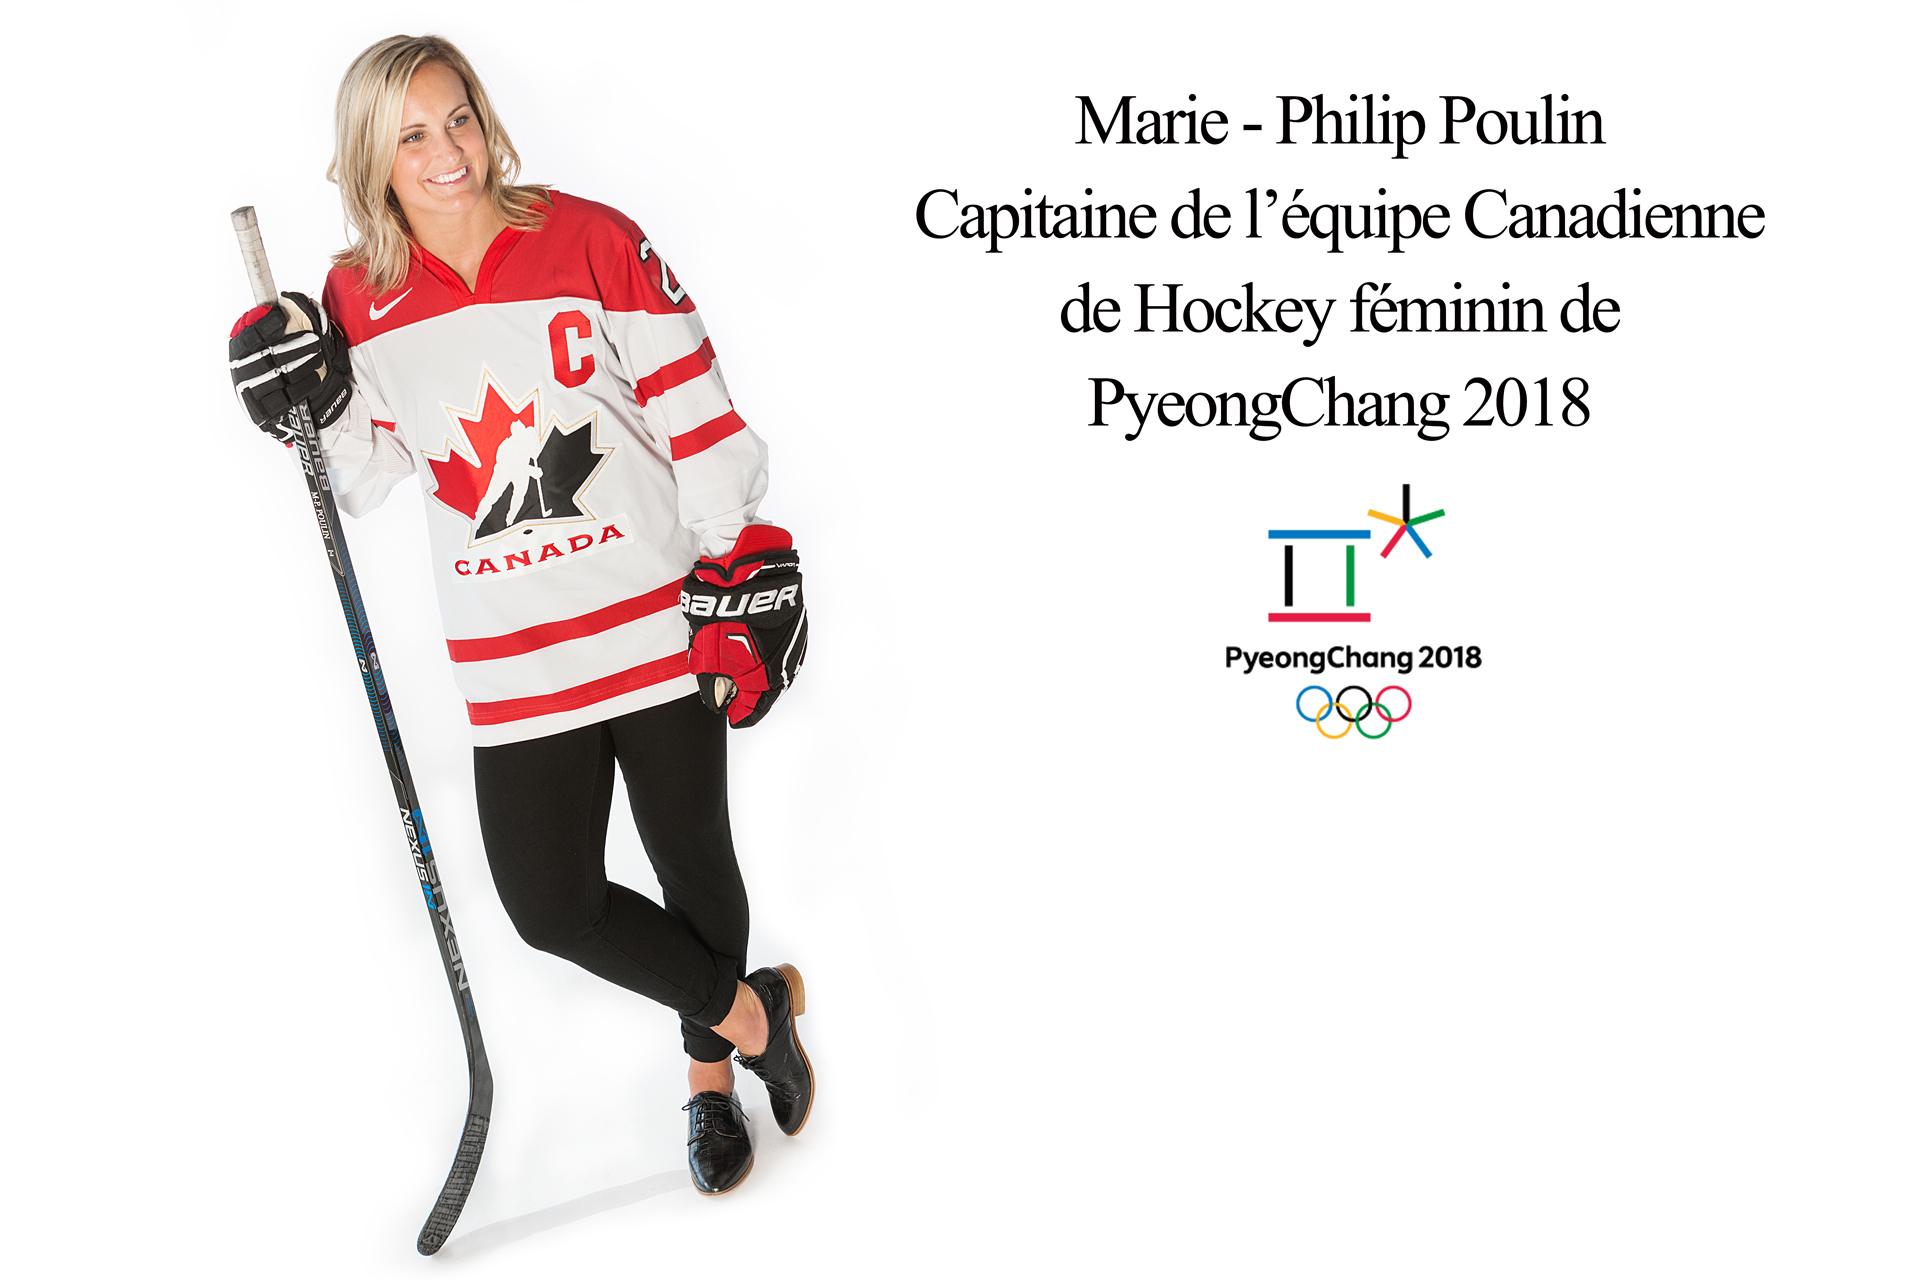 Marie-philip Poulin Capitaine